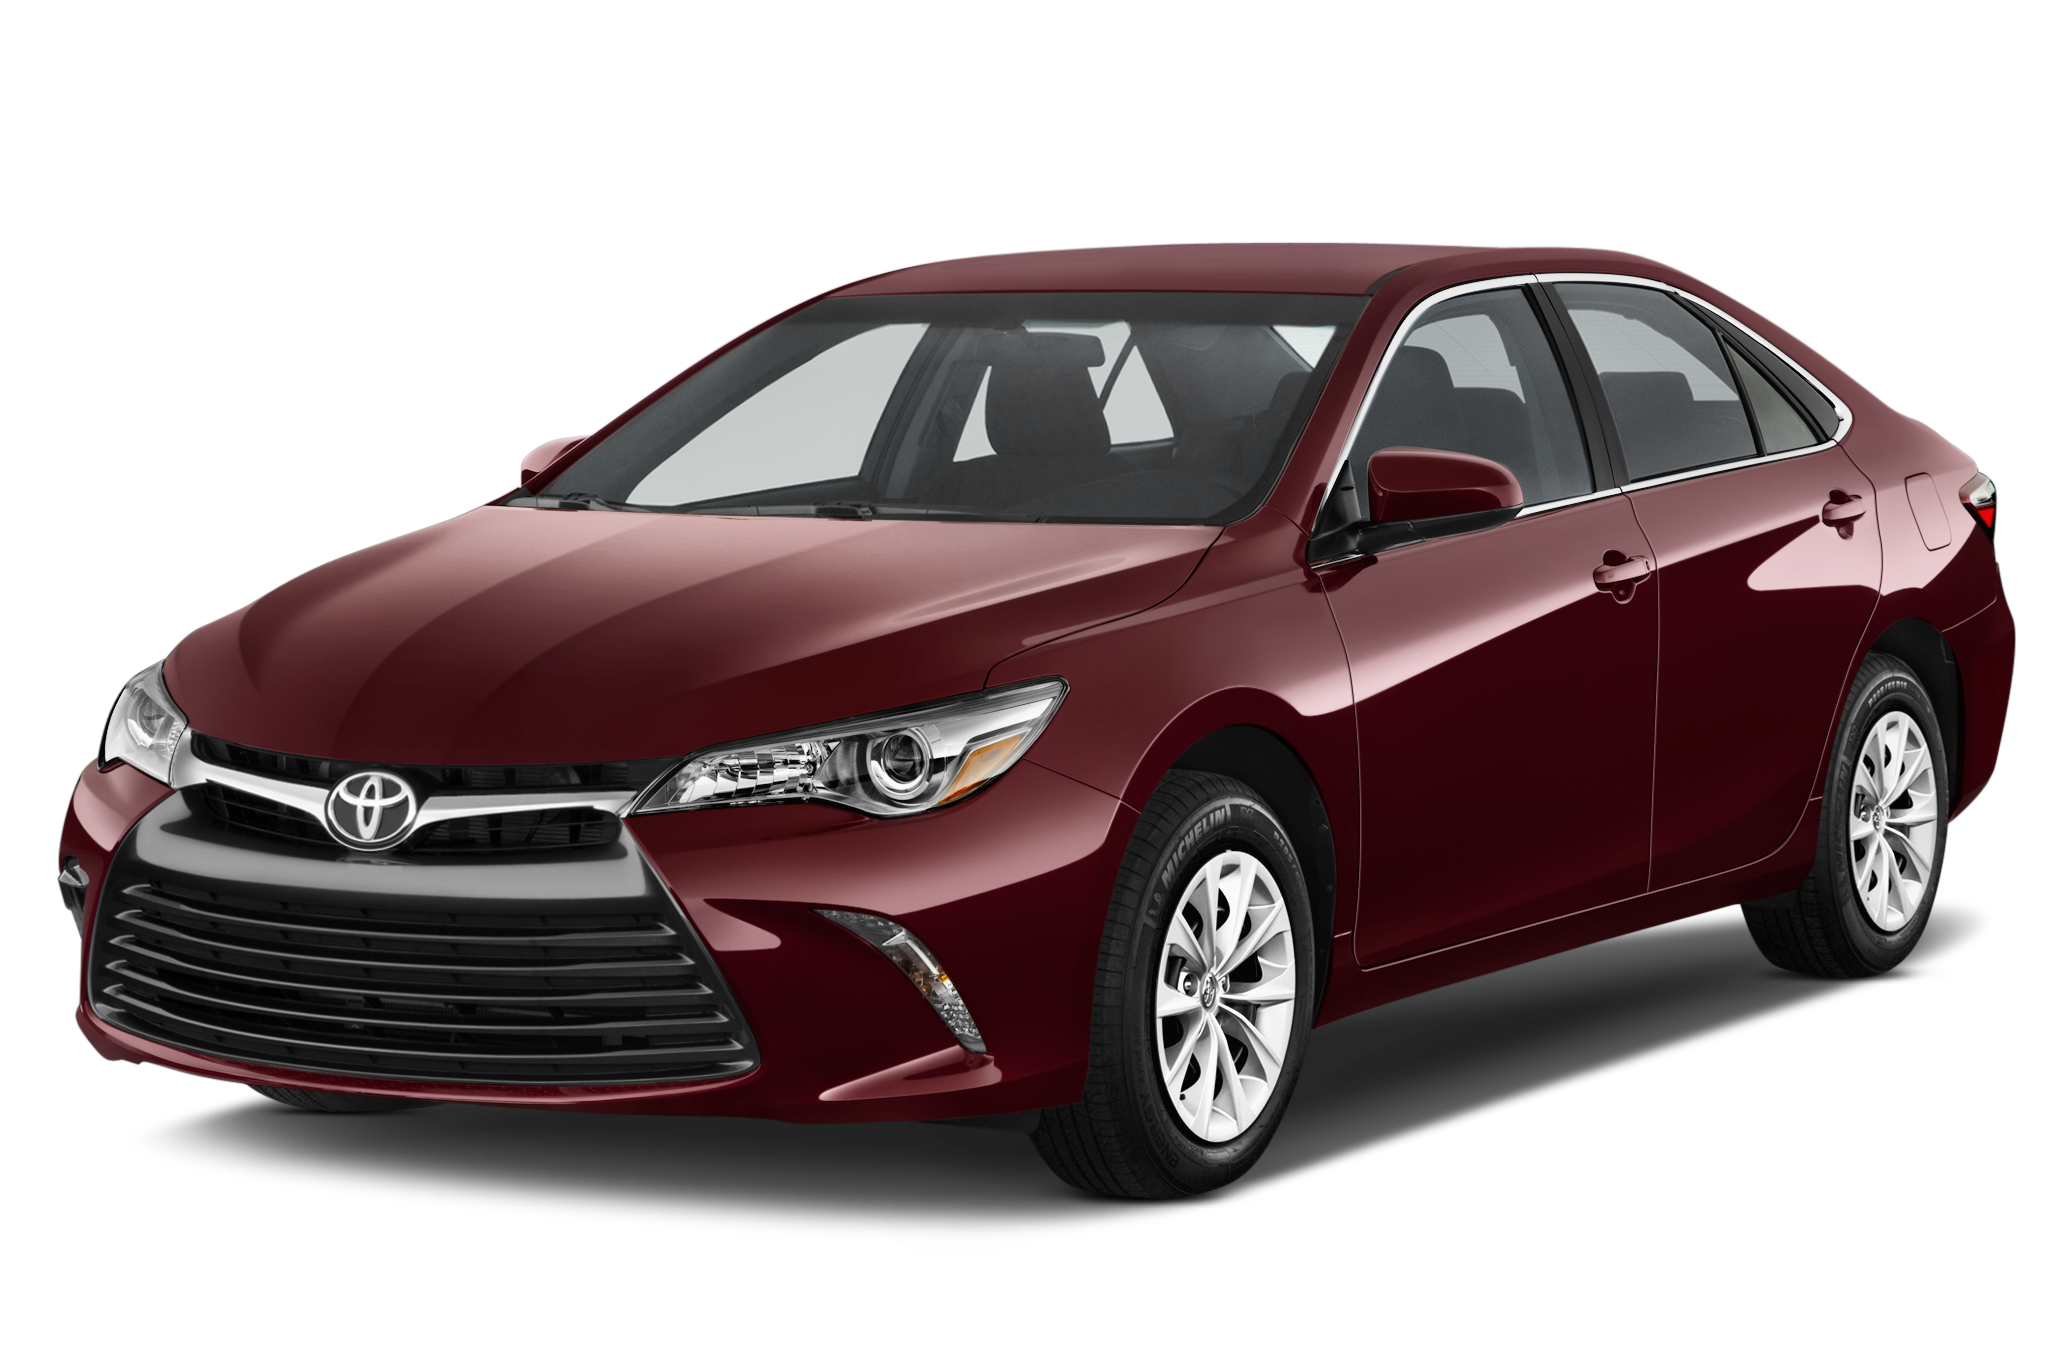 toyota camry 2017 dubai price toyota camry price abu dhabi 2018 toyota camry 2017 toyota camry. Black Bedroom Furniture Sets. Home Design Ideas